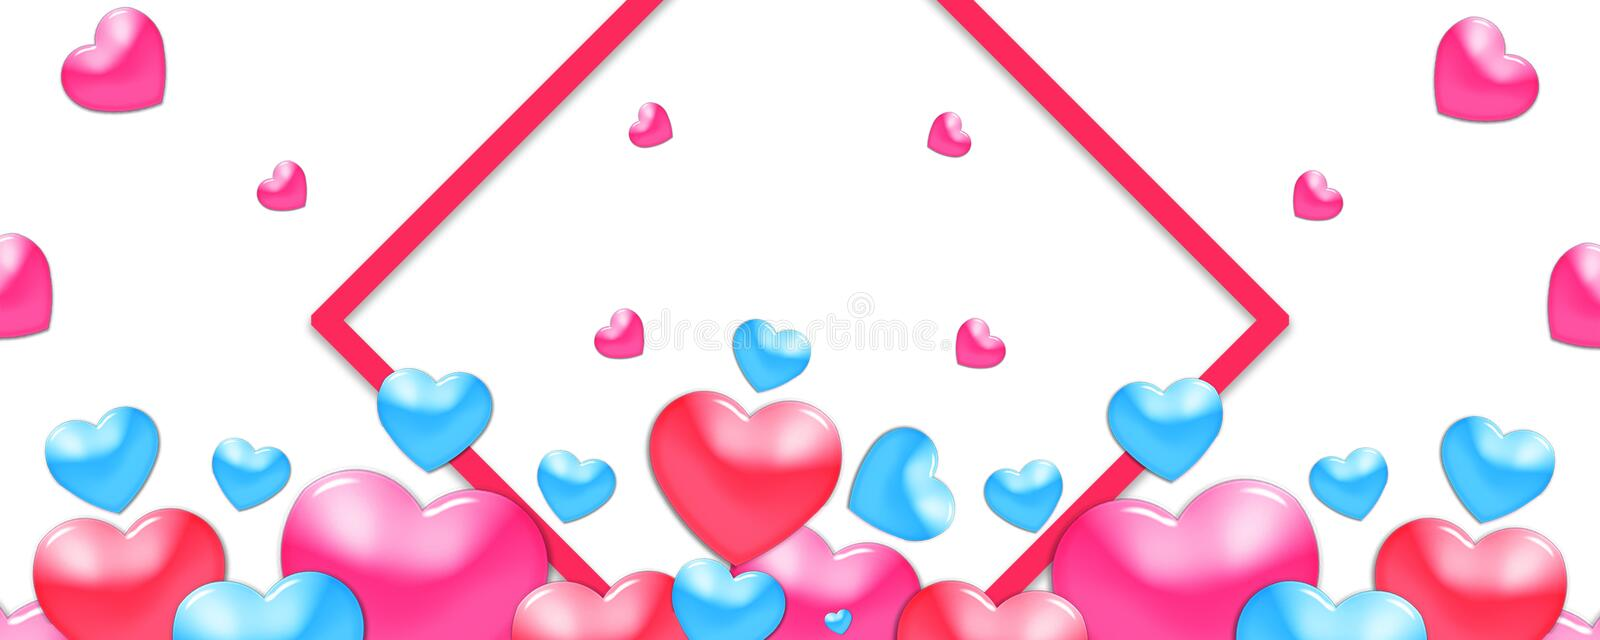 Valentines design, colorful hearts on white background with border and copy space. Valentine's Day. Valentines design, colorful hearts on white background with royalty free illustration